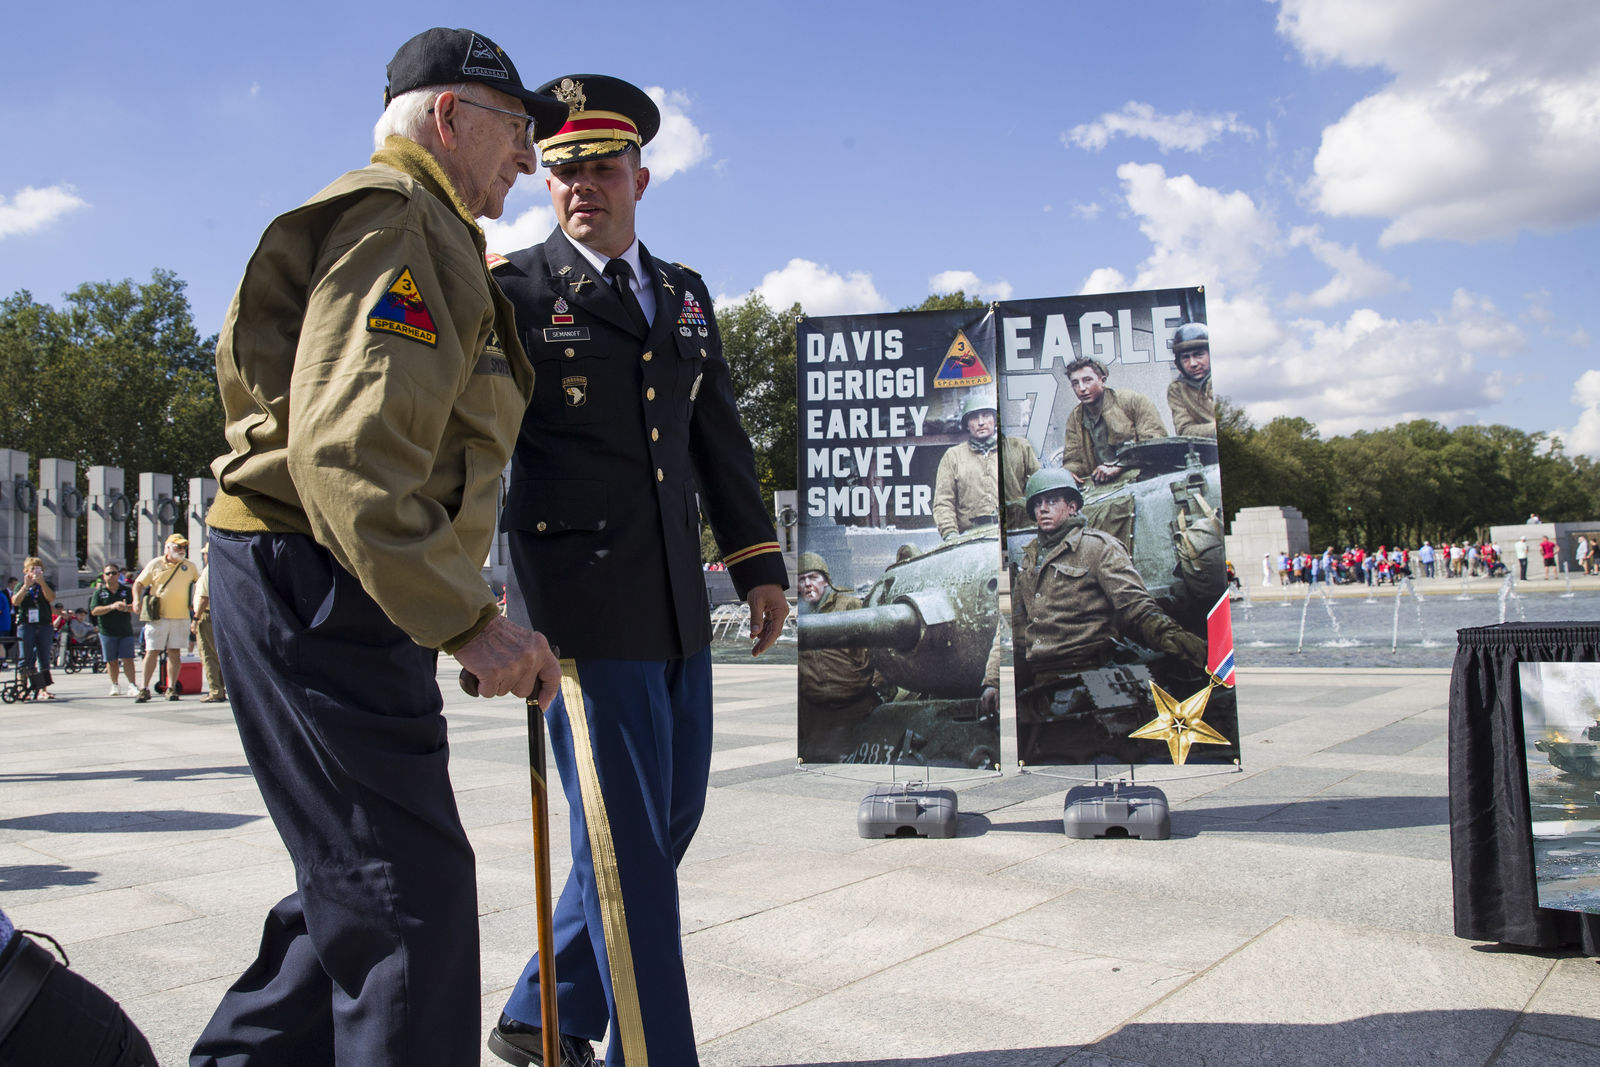 World War II veteran Clarence Smoyer, 96, left, walks to receives the Bronze Star from U.S. Army Maj. Peter Semanoff, right, at the World War II Memorial, Wednesday, Sept. 18, 2019, in Washington. (AP Photo/Alex Brandon)